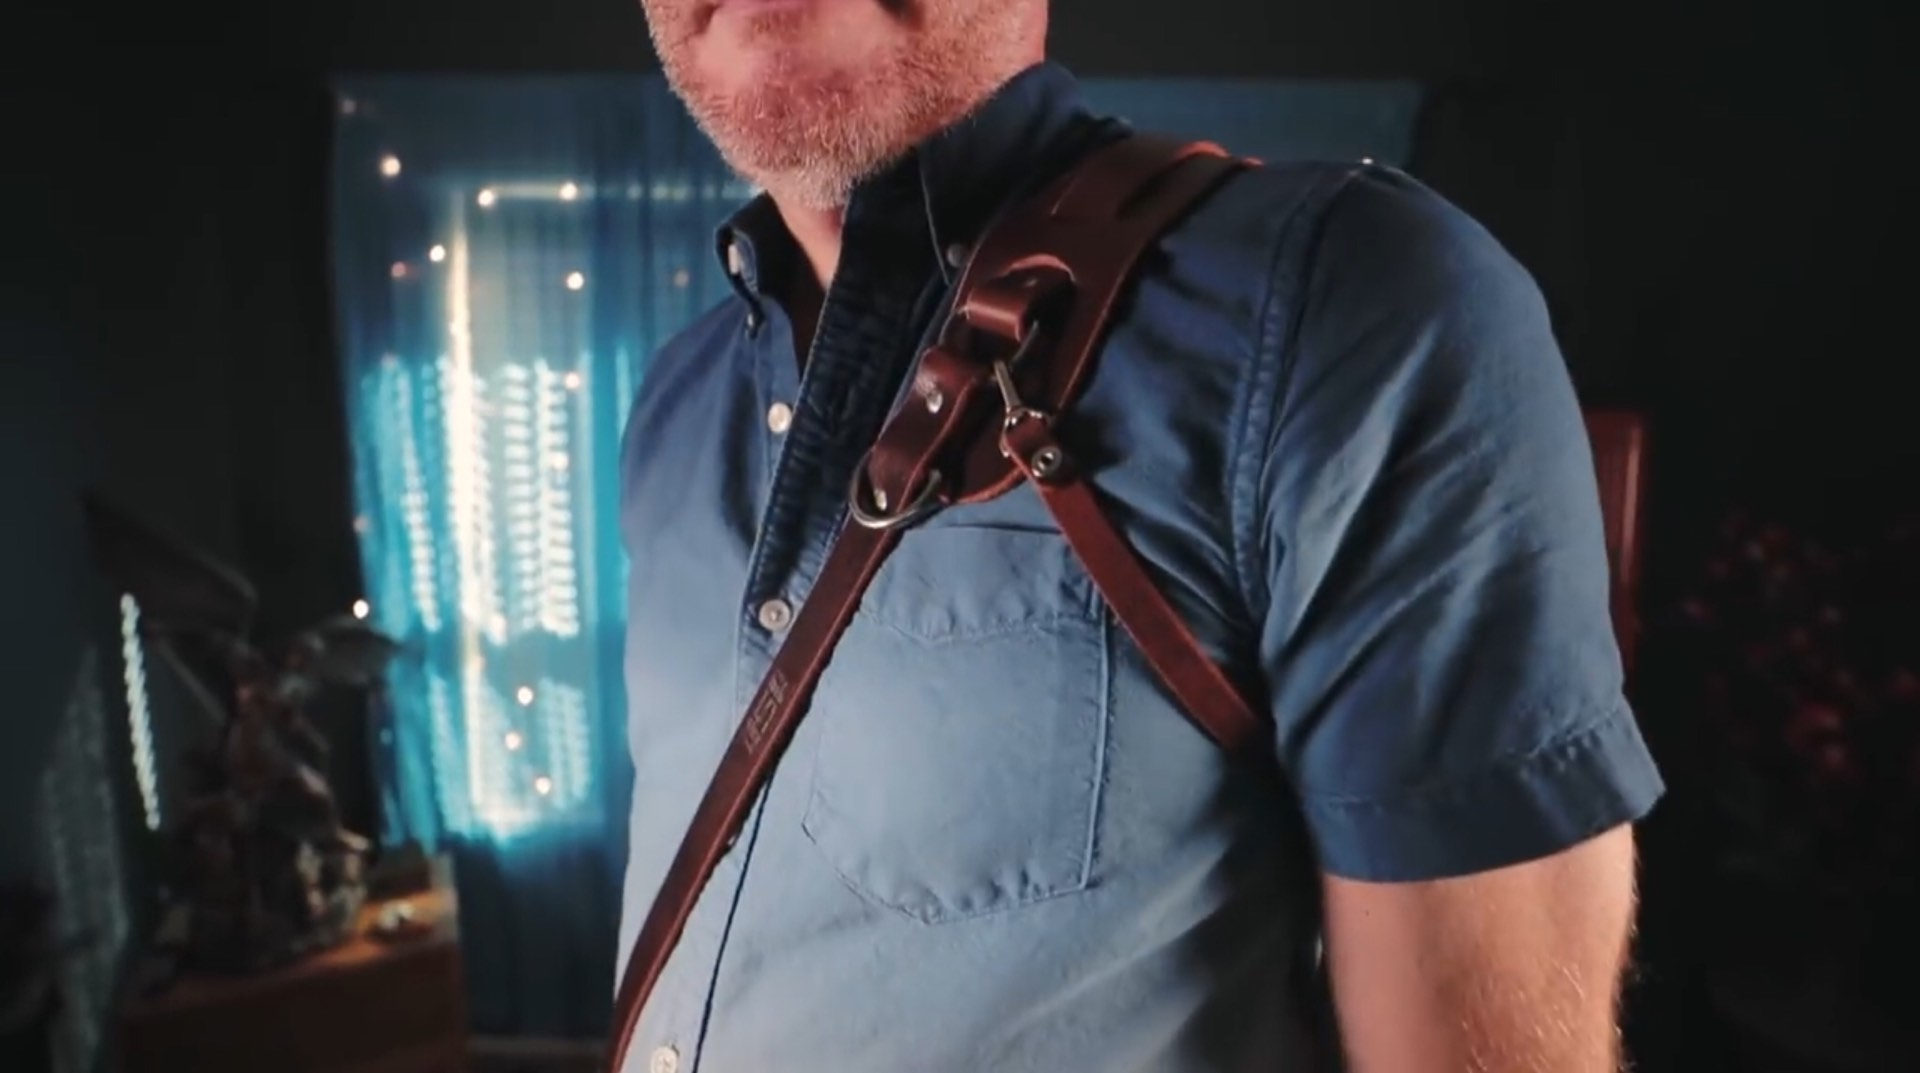 holdfast-money-maker-solo-camera-strap-steve-huff